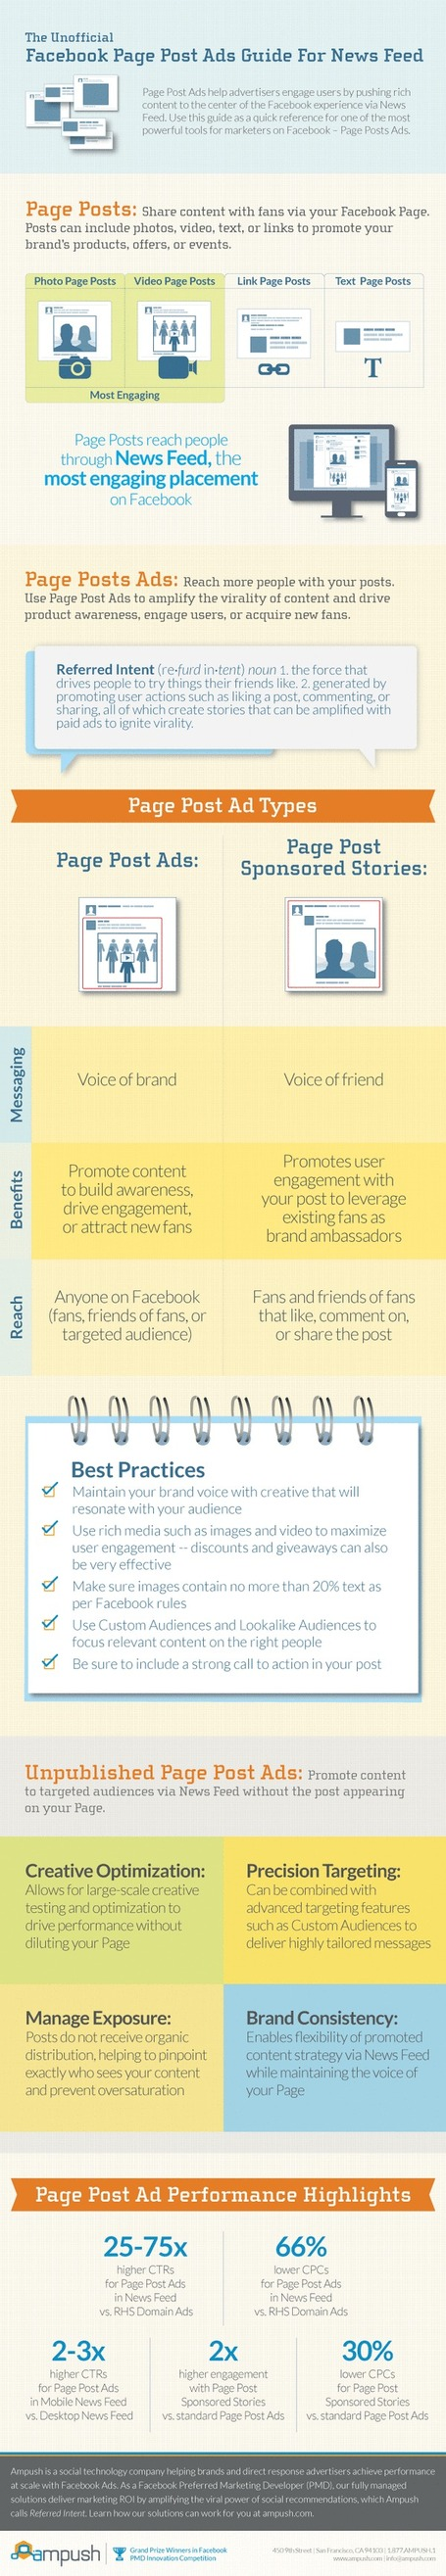 Infographie : guide des publicités Facebook sur le News Feed | formation 2.0 | Scoop.it